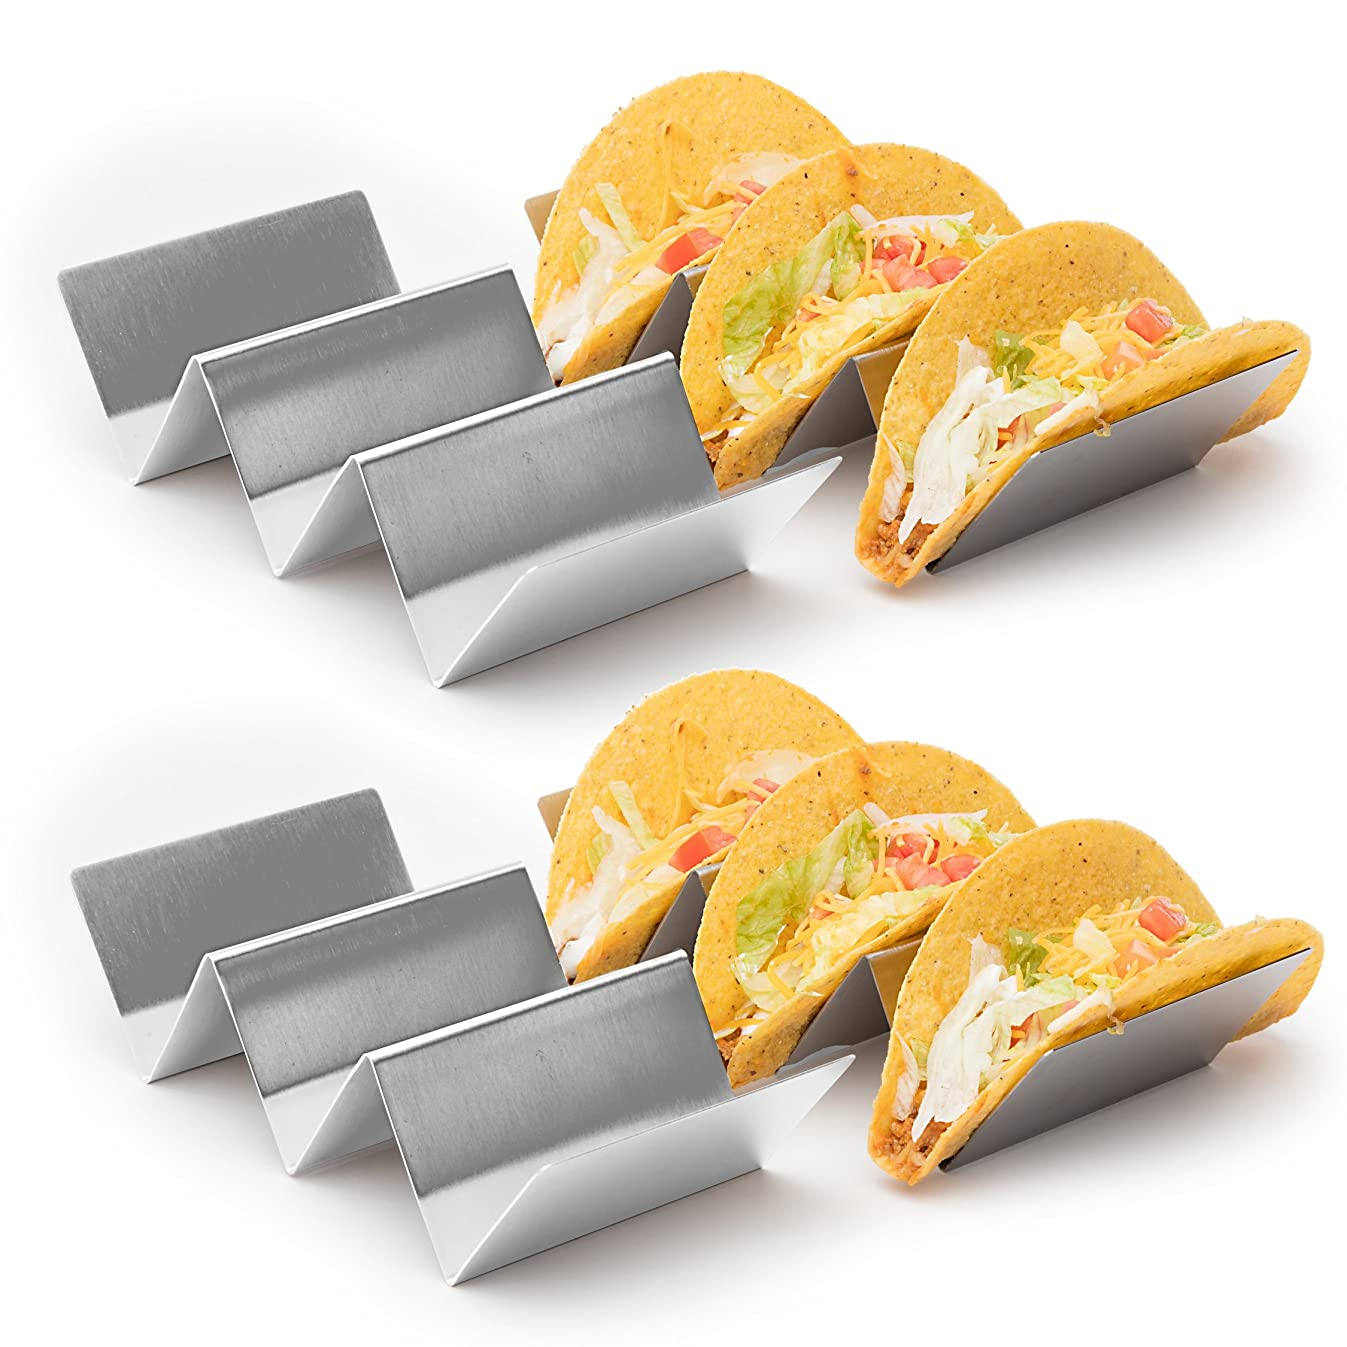 """4 Pack - Stylish Stainless Steel Taco Holder Stand, Taco Truck Tray Style, Rack Holds Up to 3 Tacos Each, Oven Safe for Baking, Dishwasher and Grill Safe, 4"""" x 8"""", by California Home Goods"""